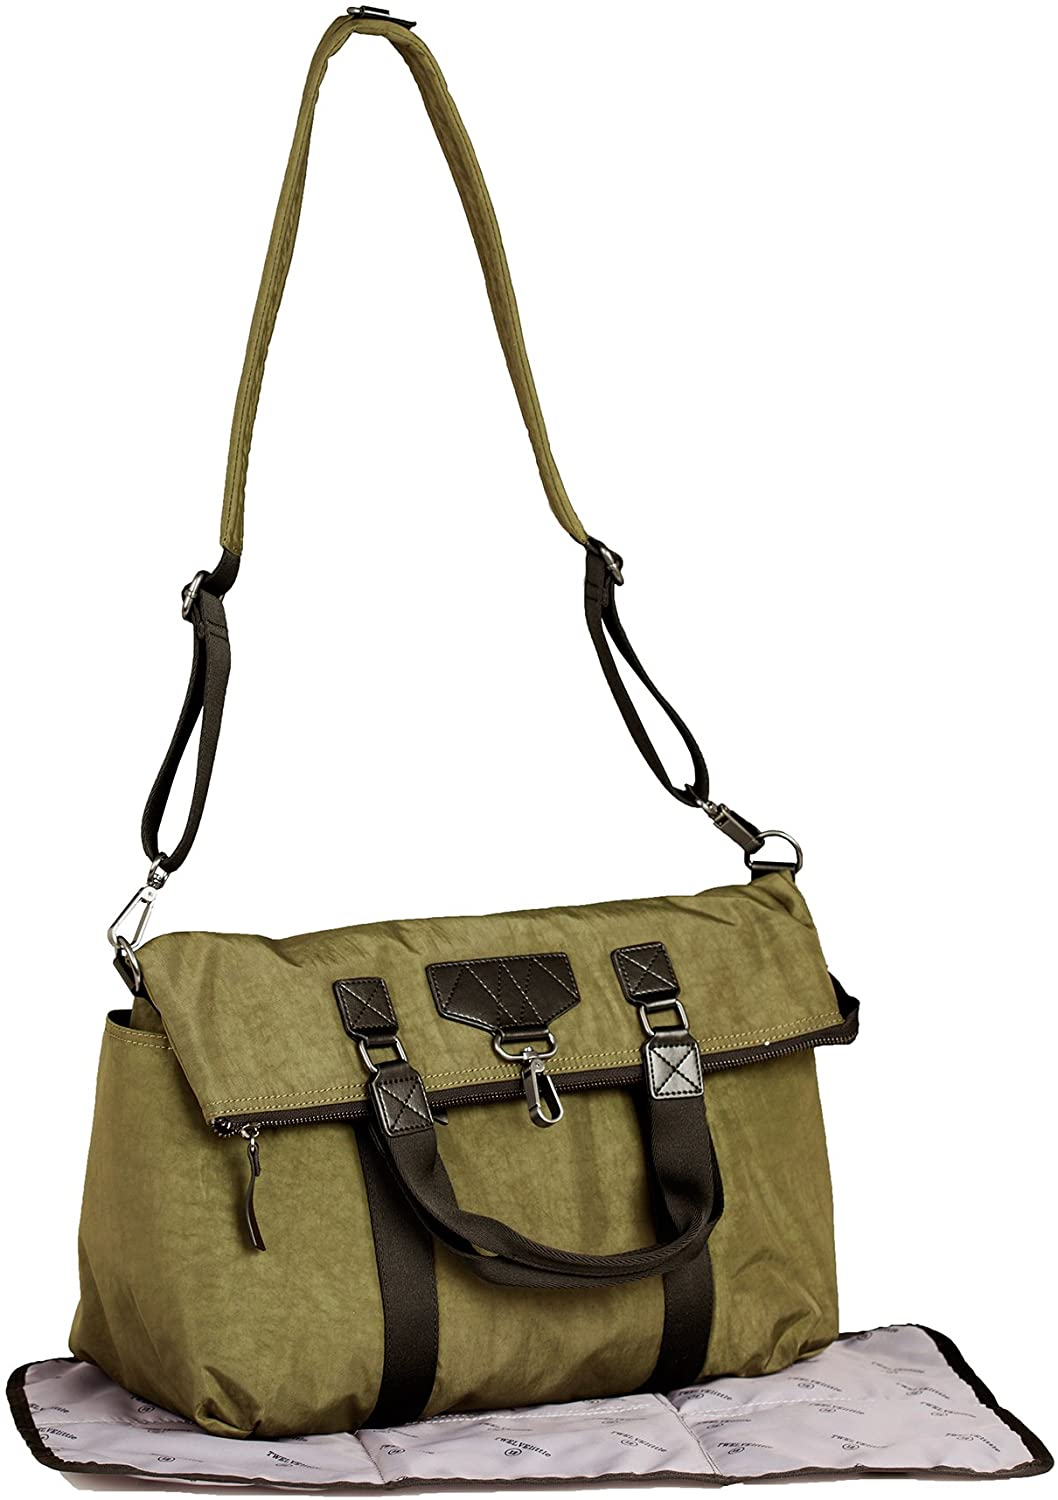 Twelvelittle Unisex Courage 3-IN-1 Foldover Tote